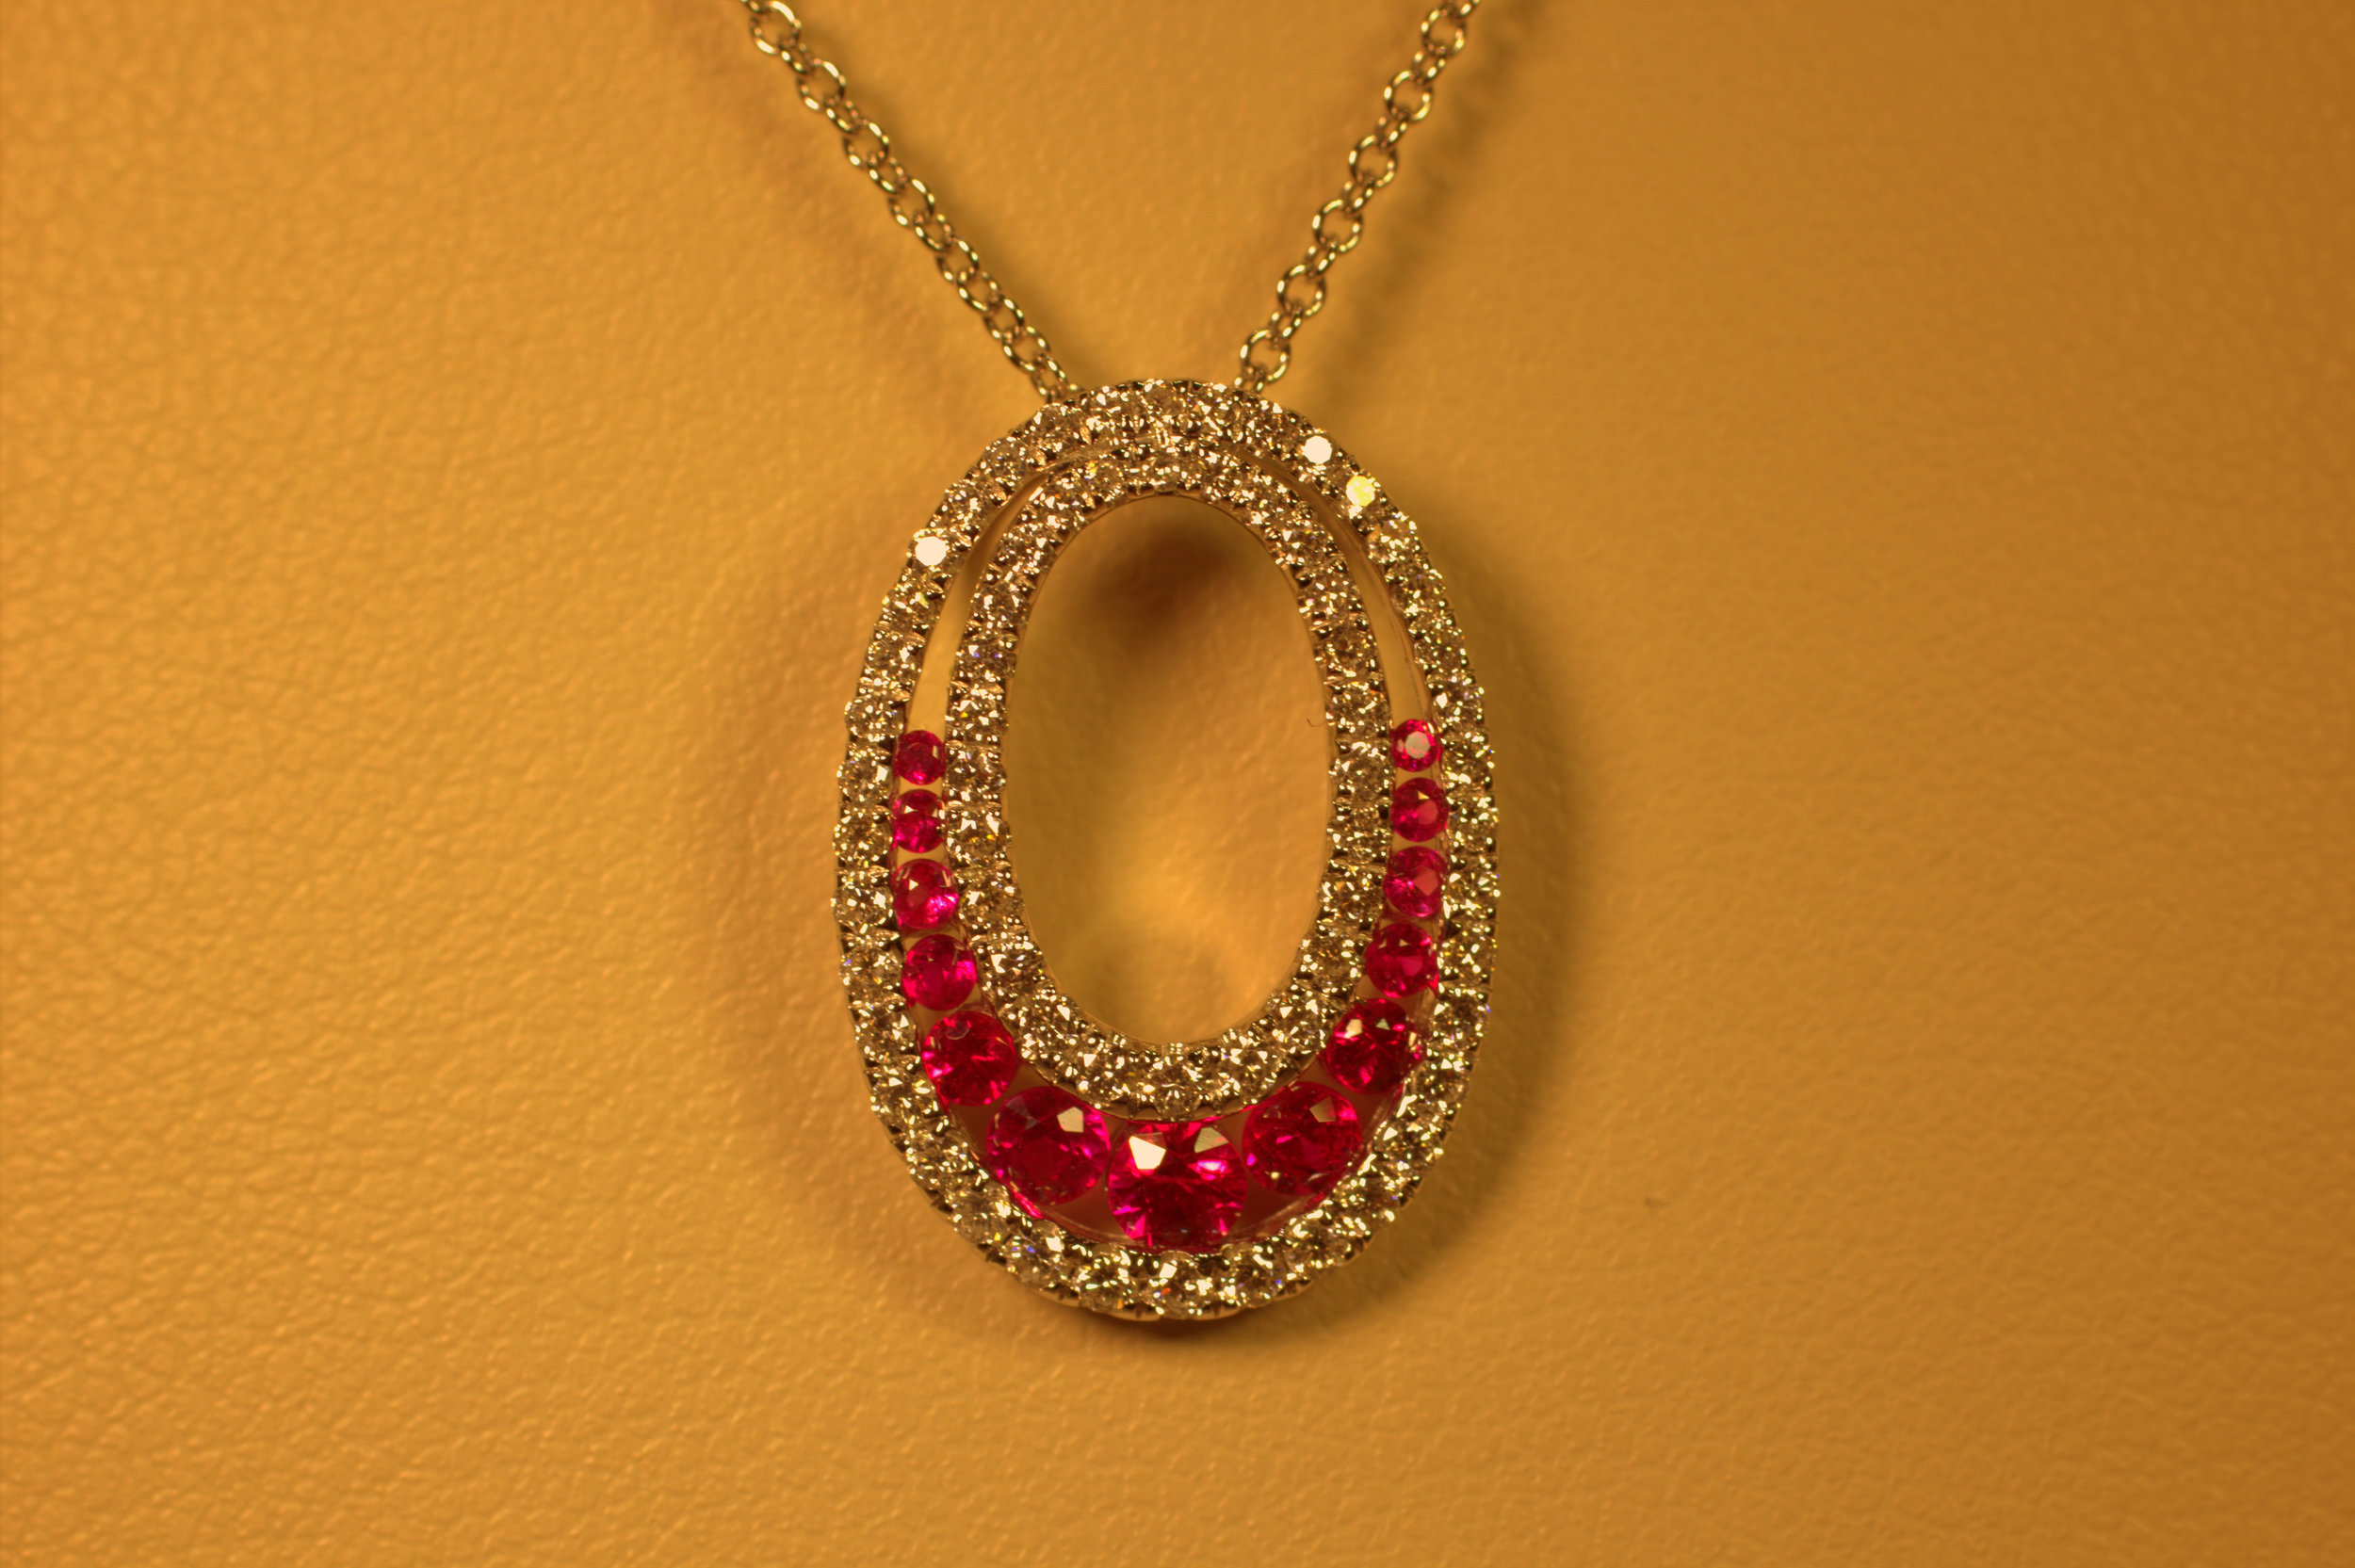 Ruby is durable enough for everyday wear!